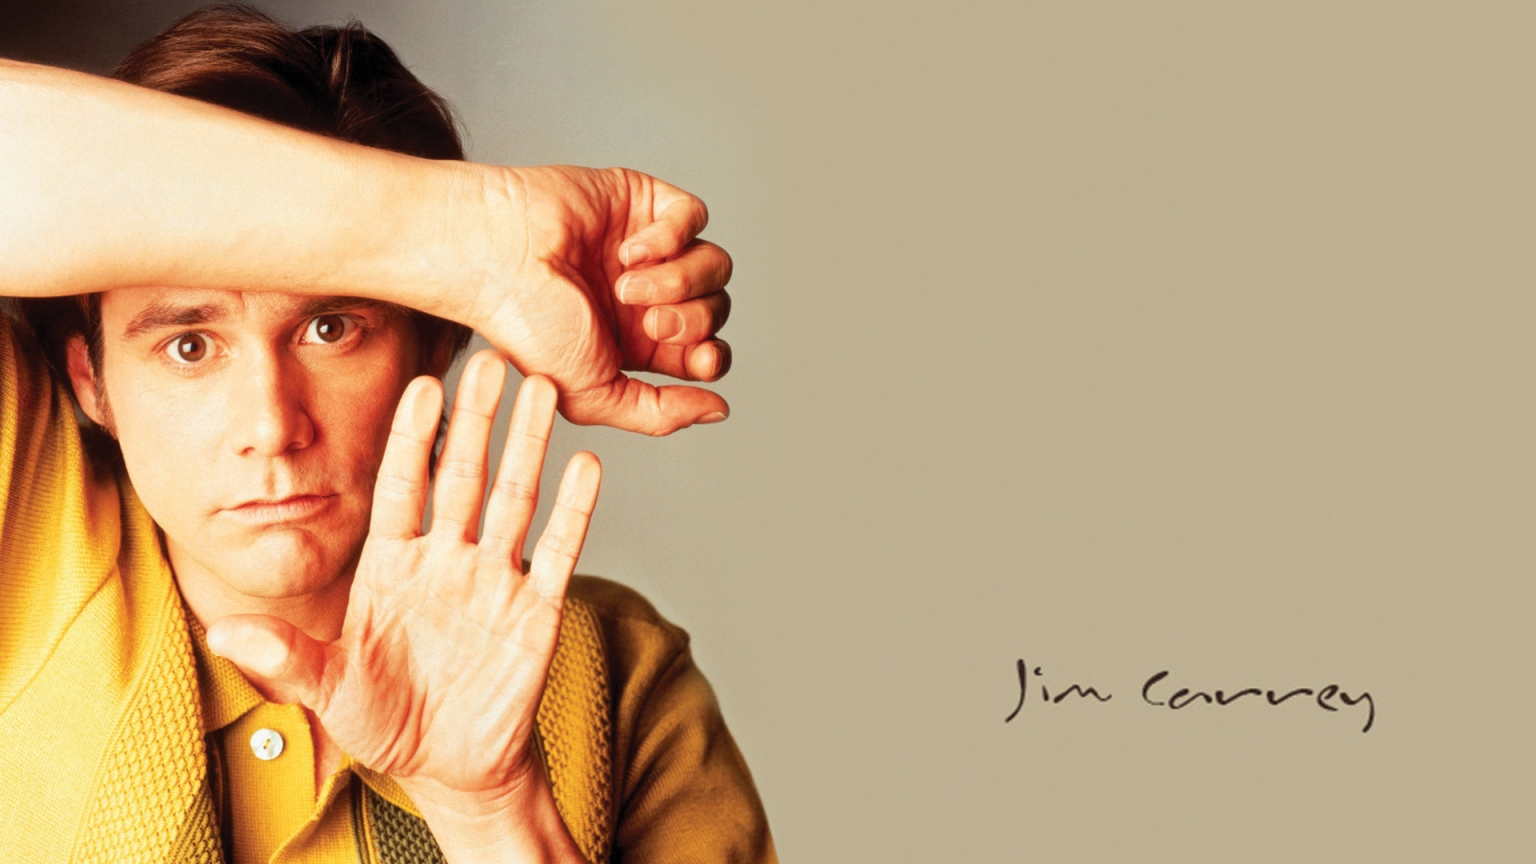 Jim Carrey for 1536 x 864 HDTV resolution